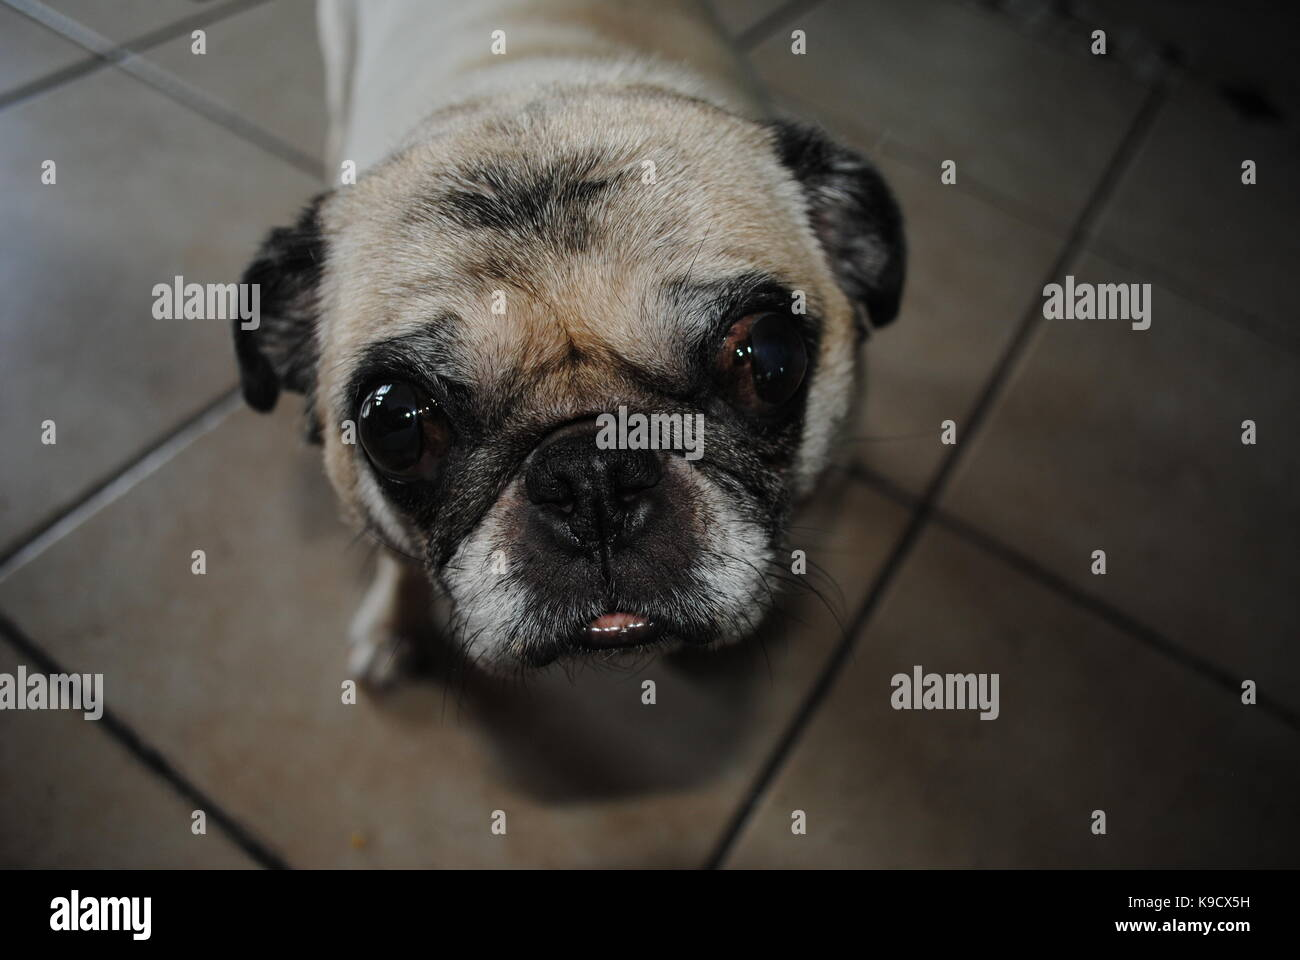 A pug that is begging - Stock Image